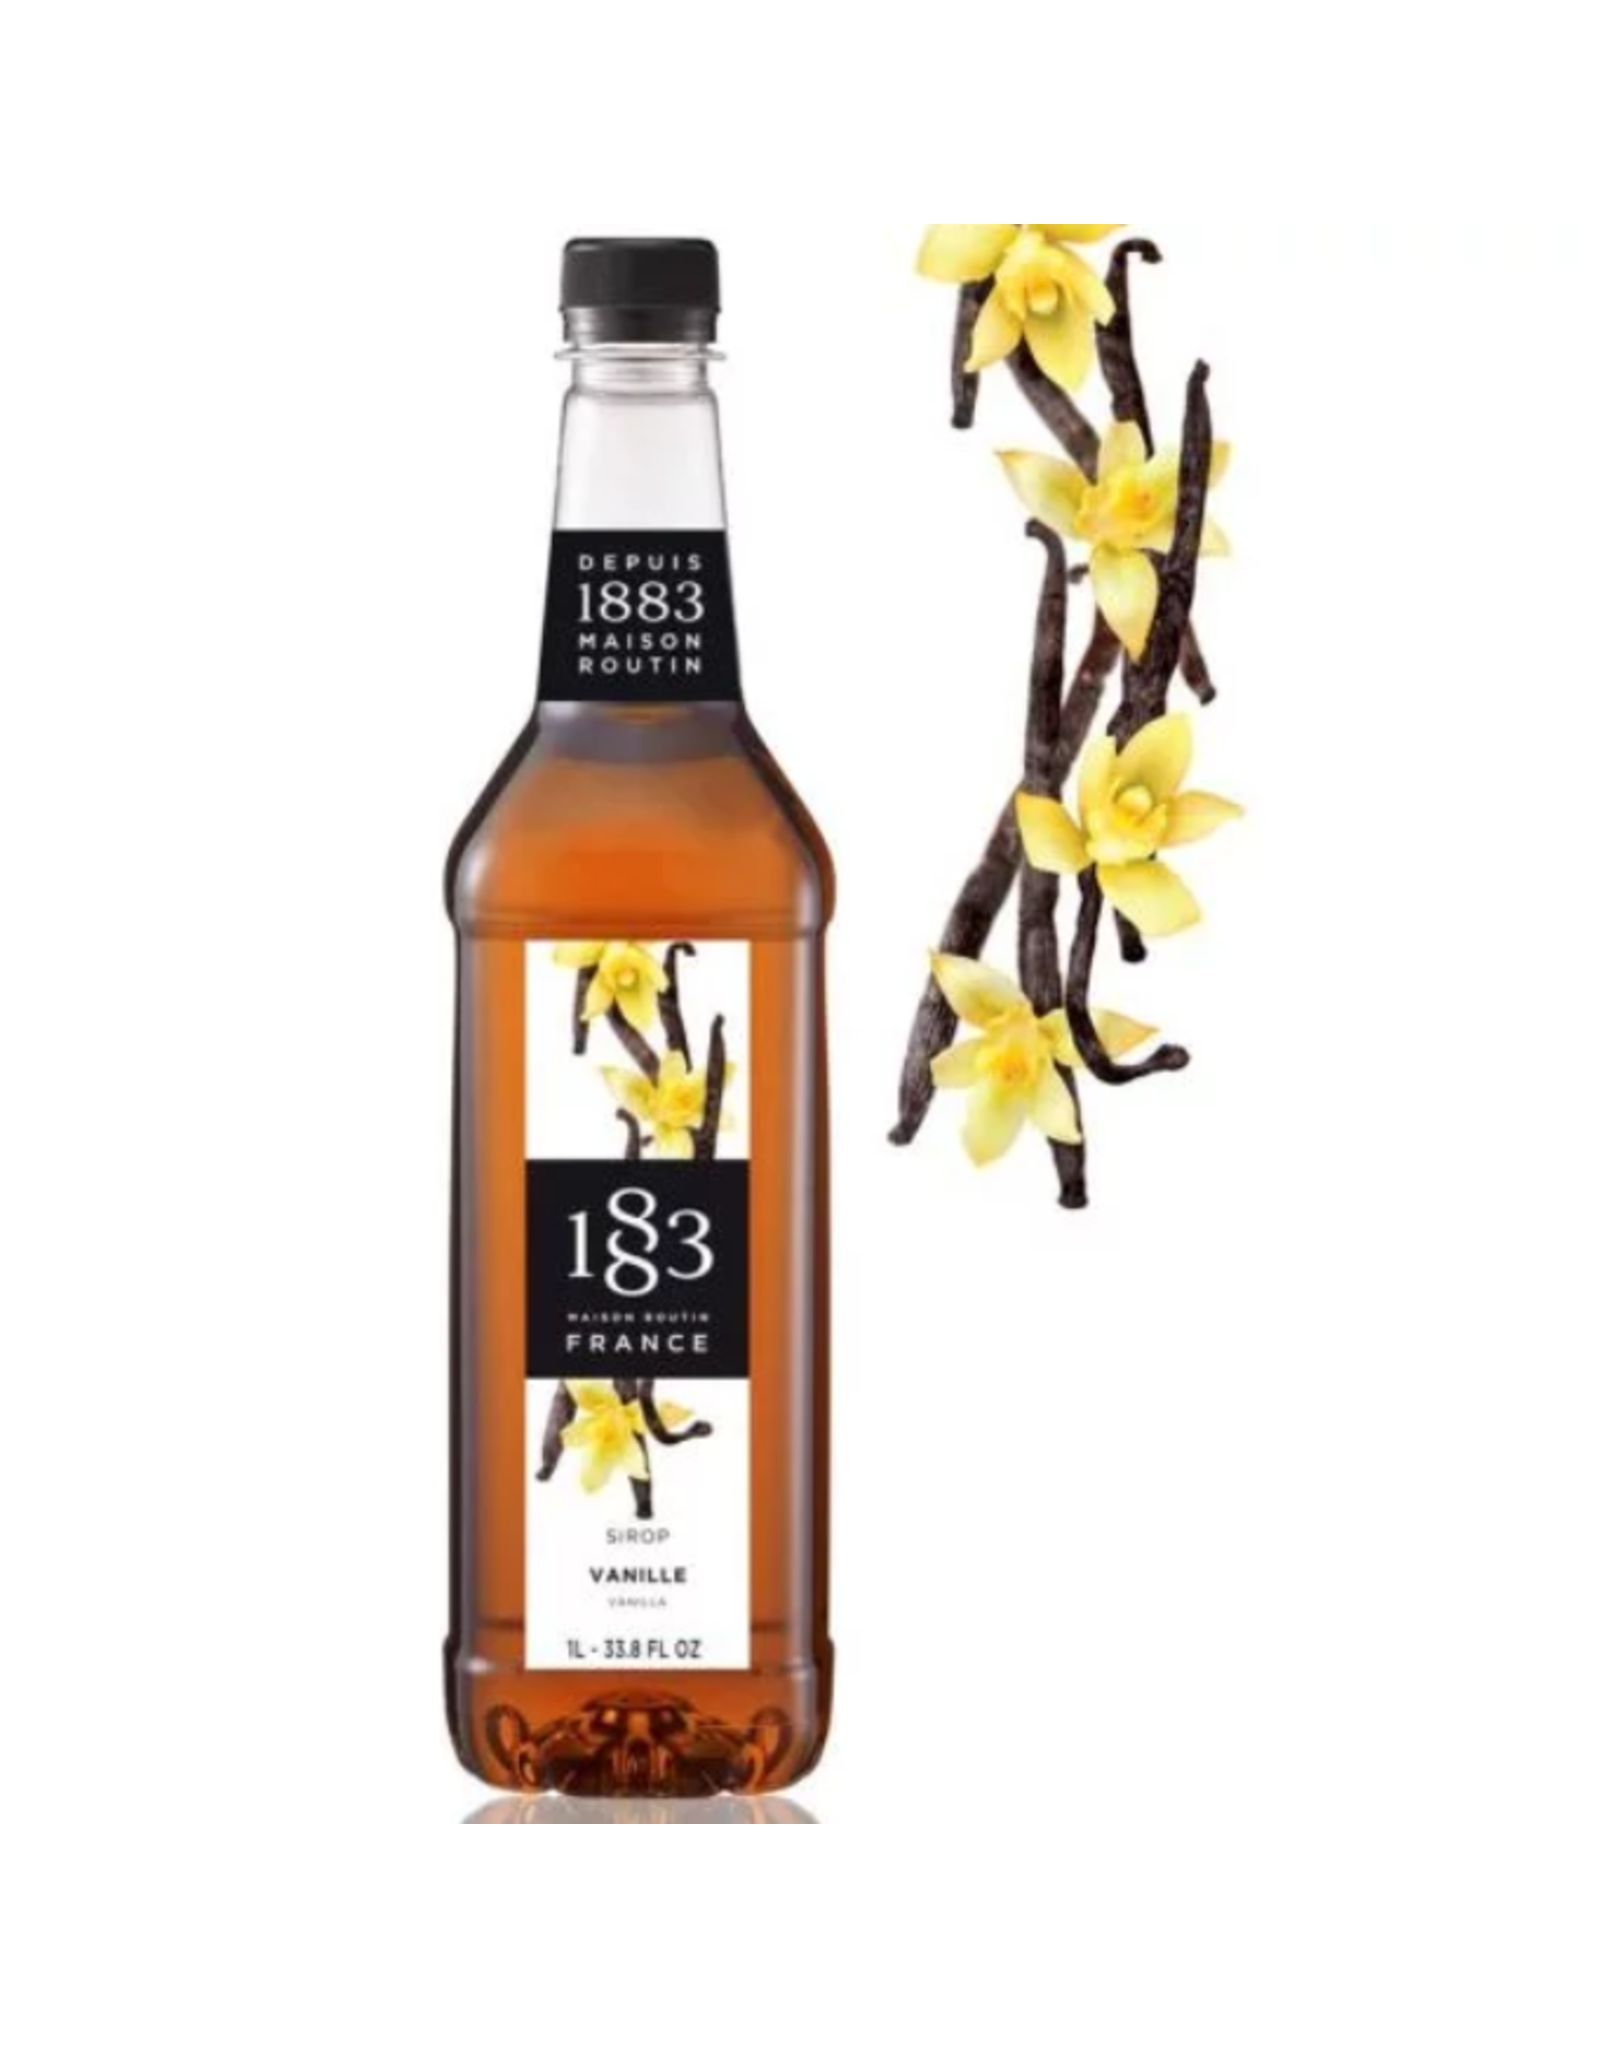 1883 Maison Routin France 1883 Syrup, Vanilla 1L Bottle